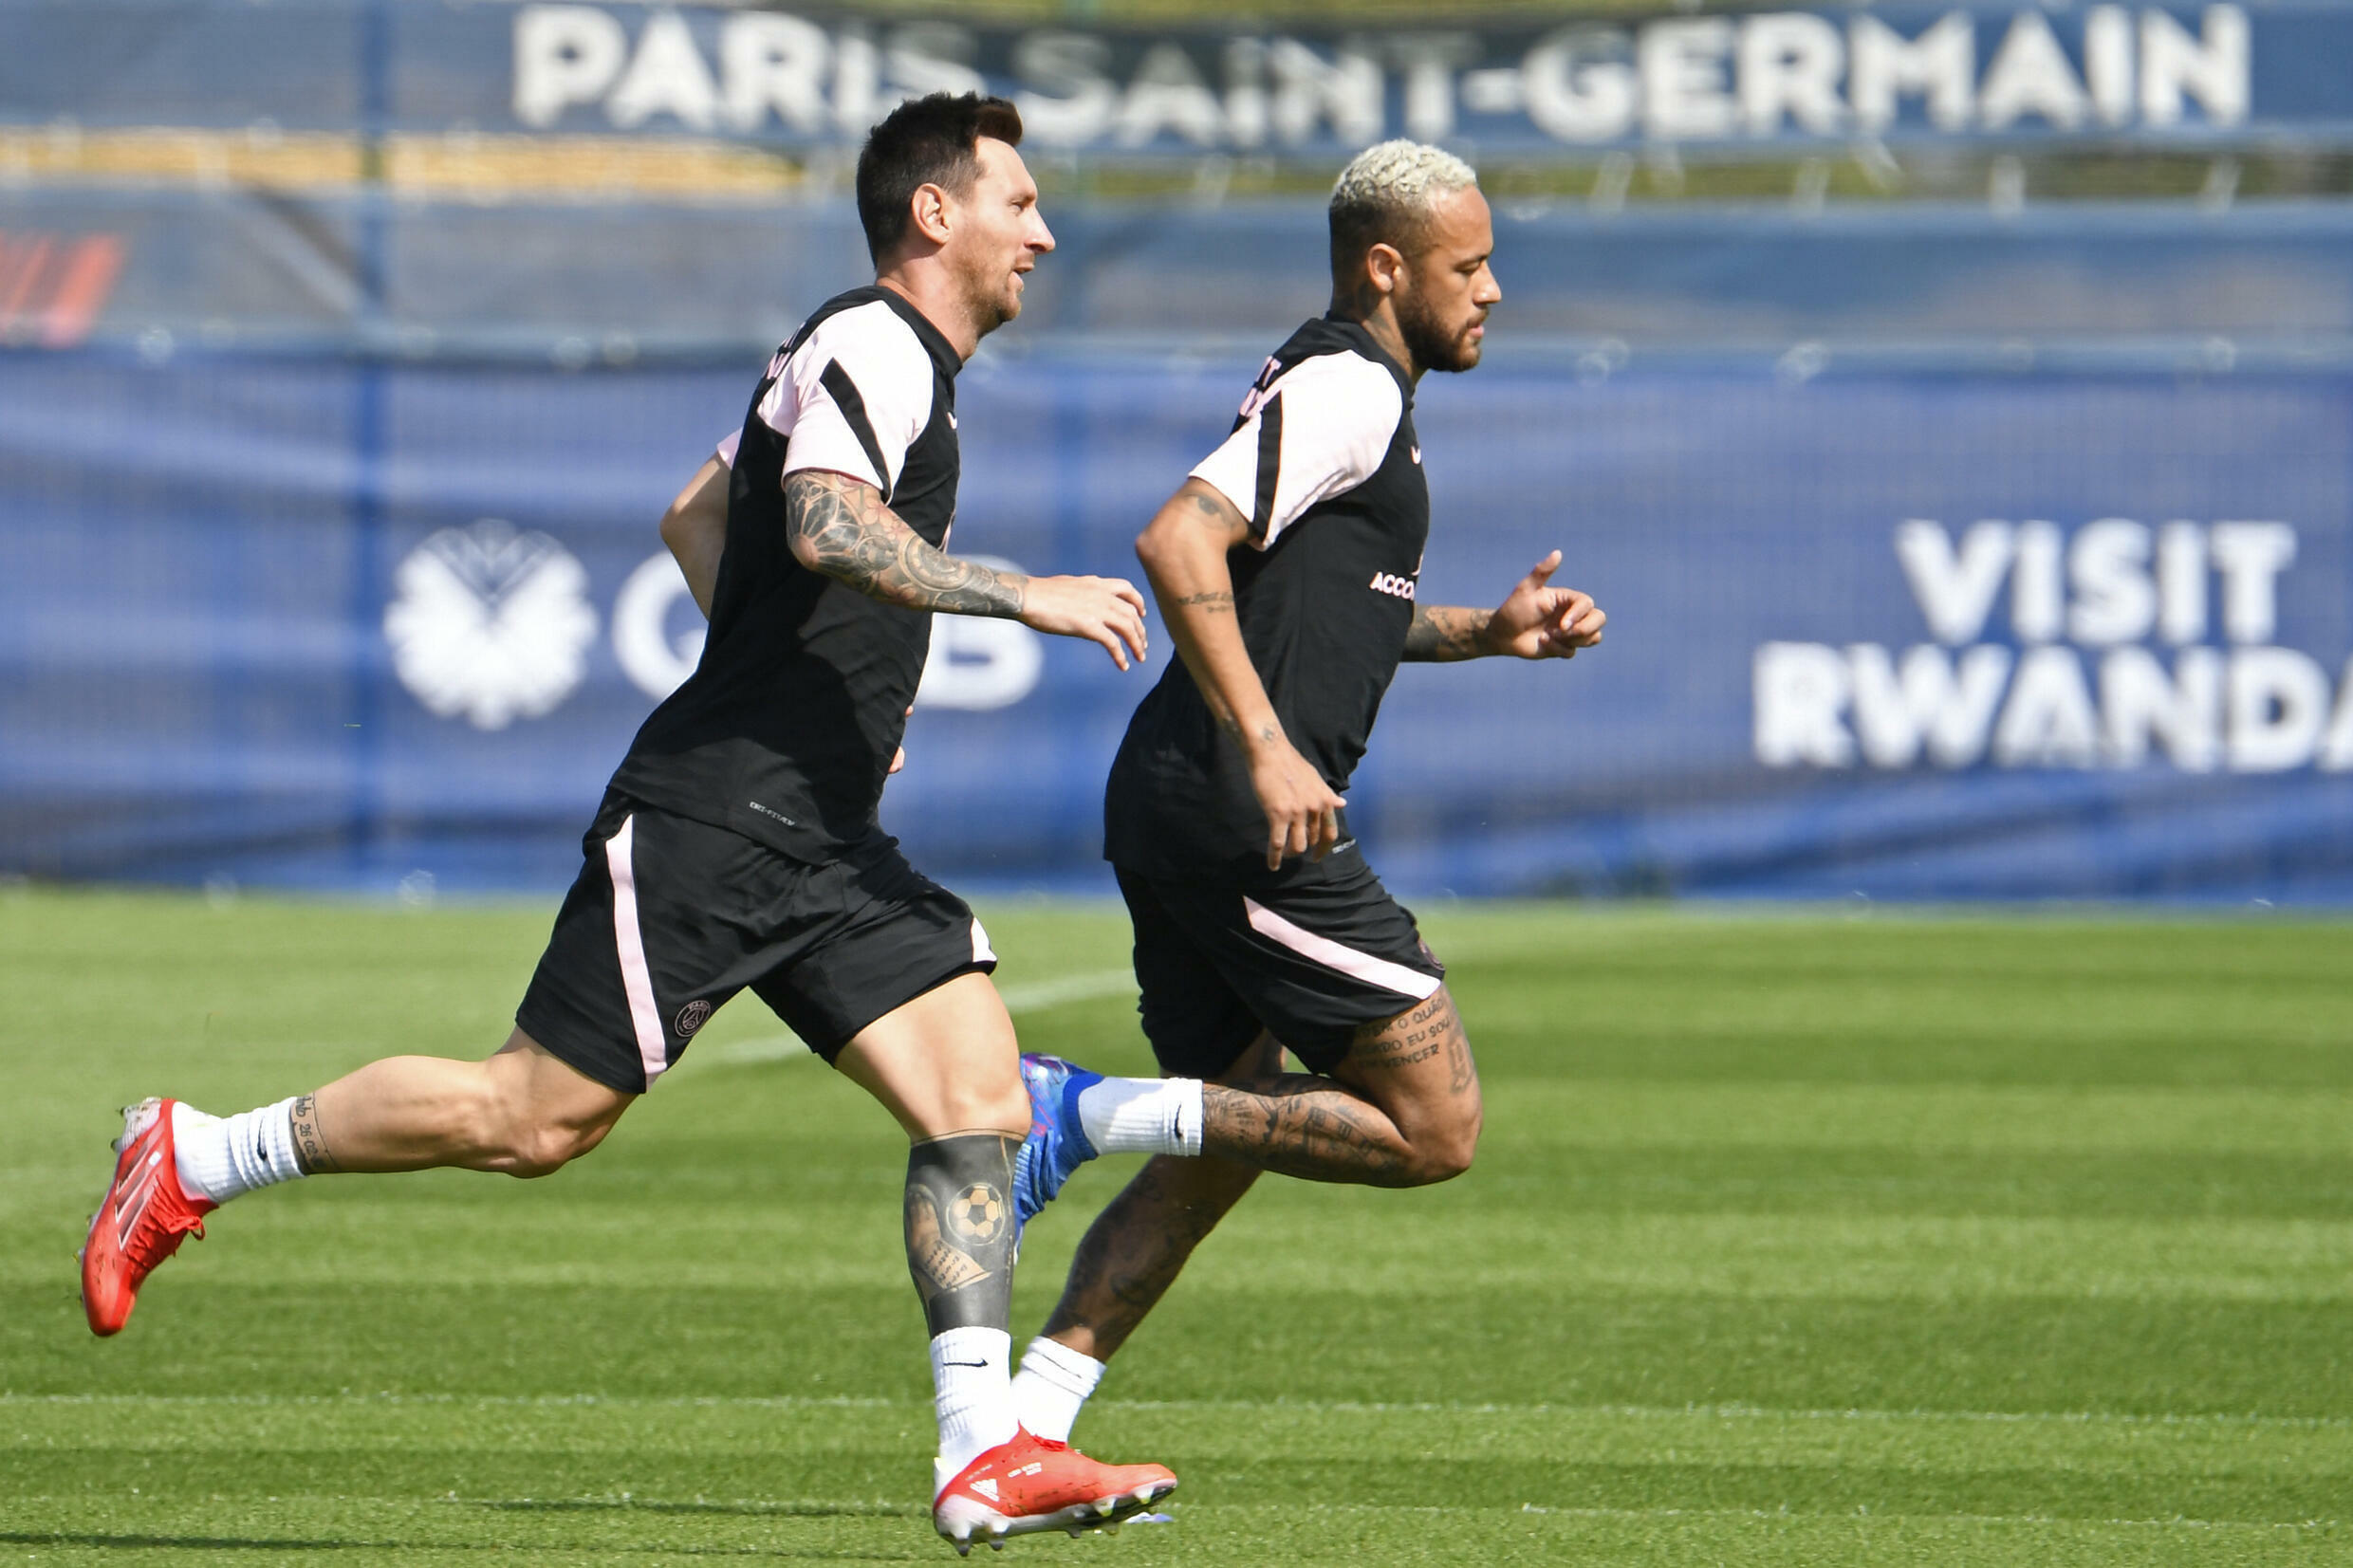 in the wings: Lionel Messi and Neymar are training but will not play for Paris Saint-Germain against Strasbourg